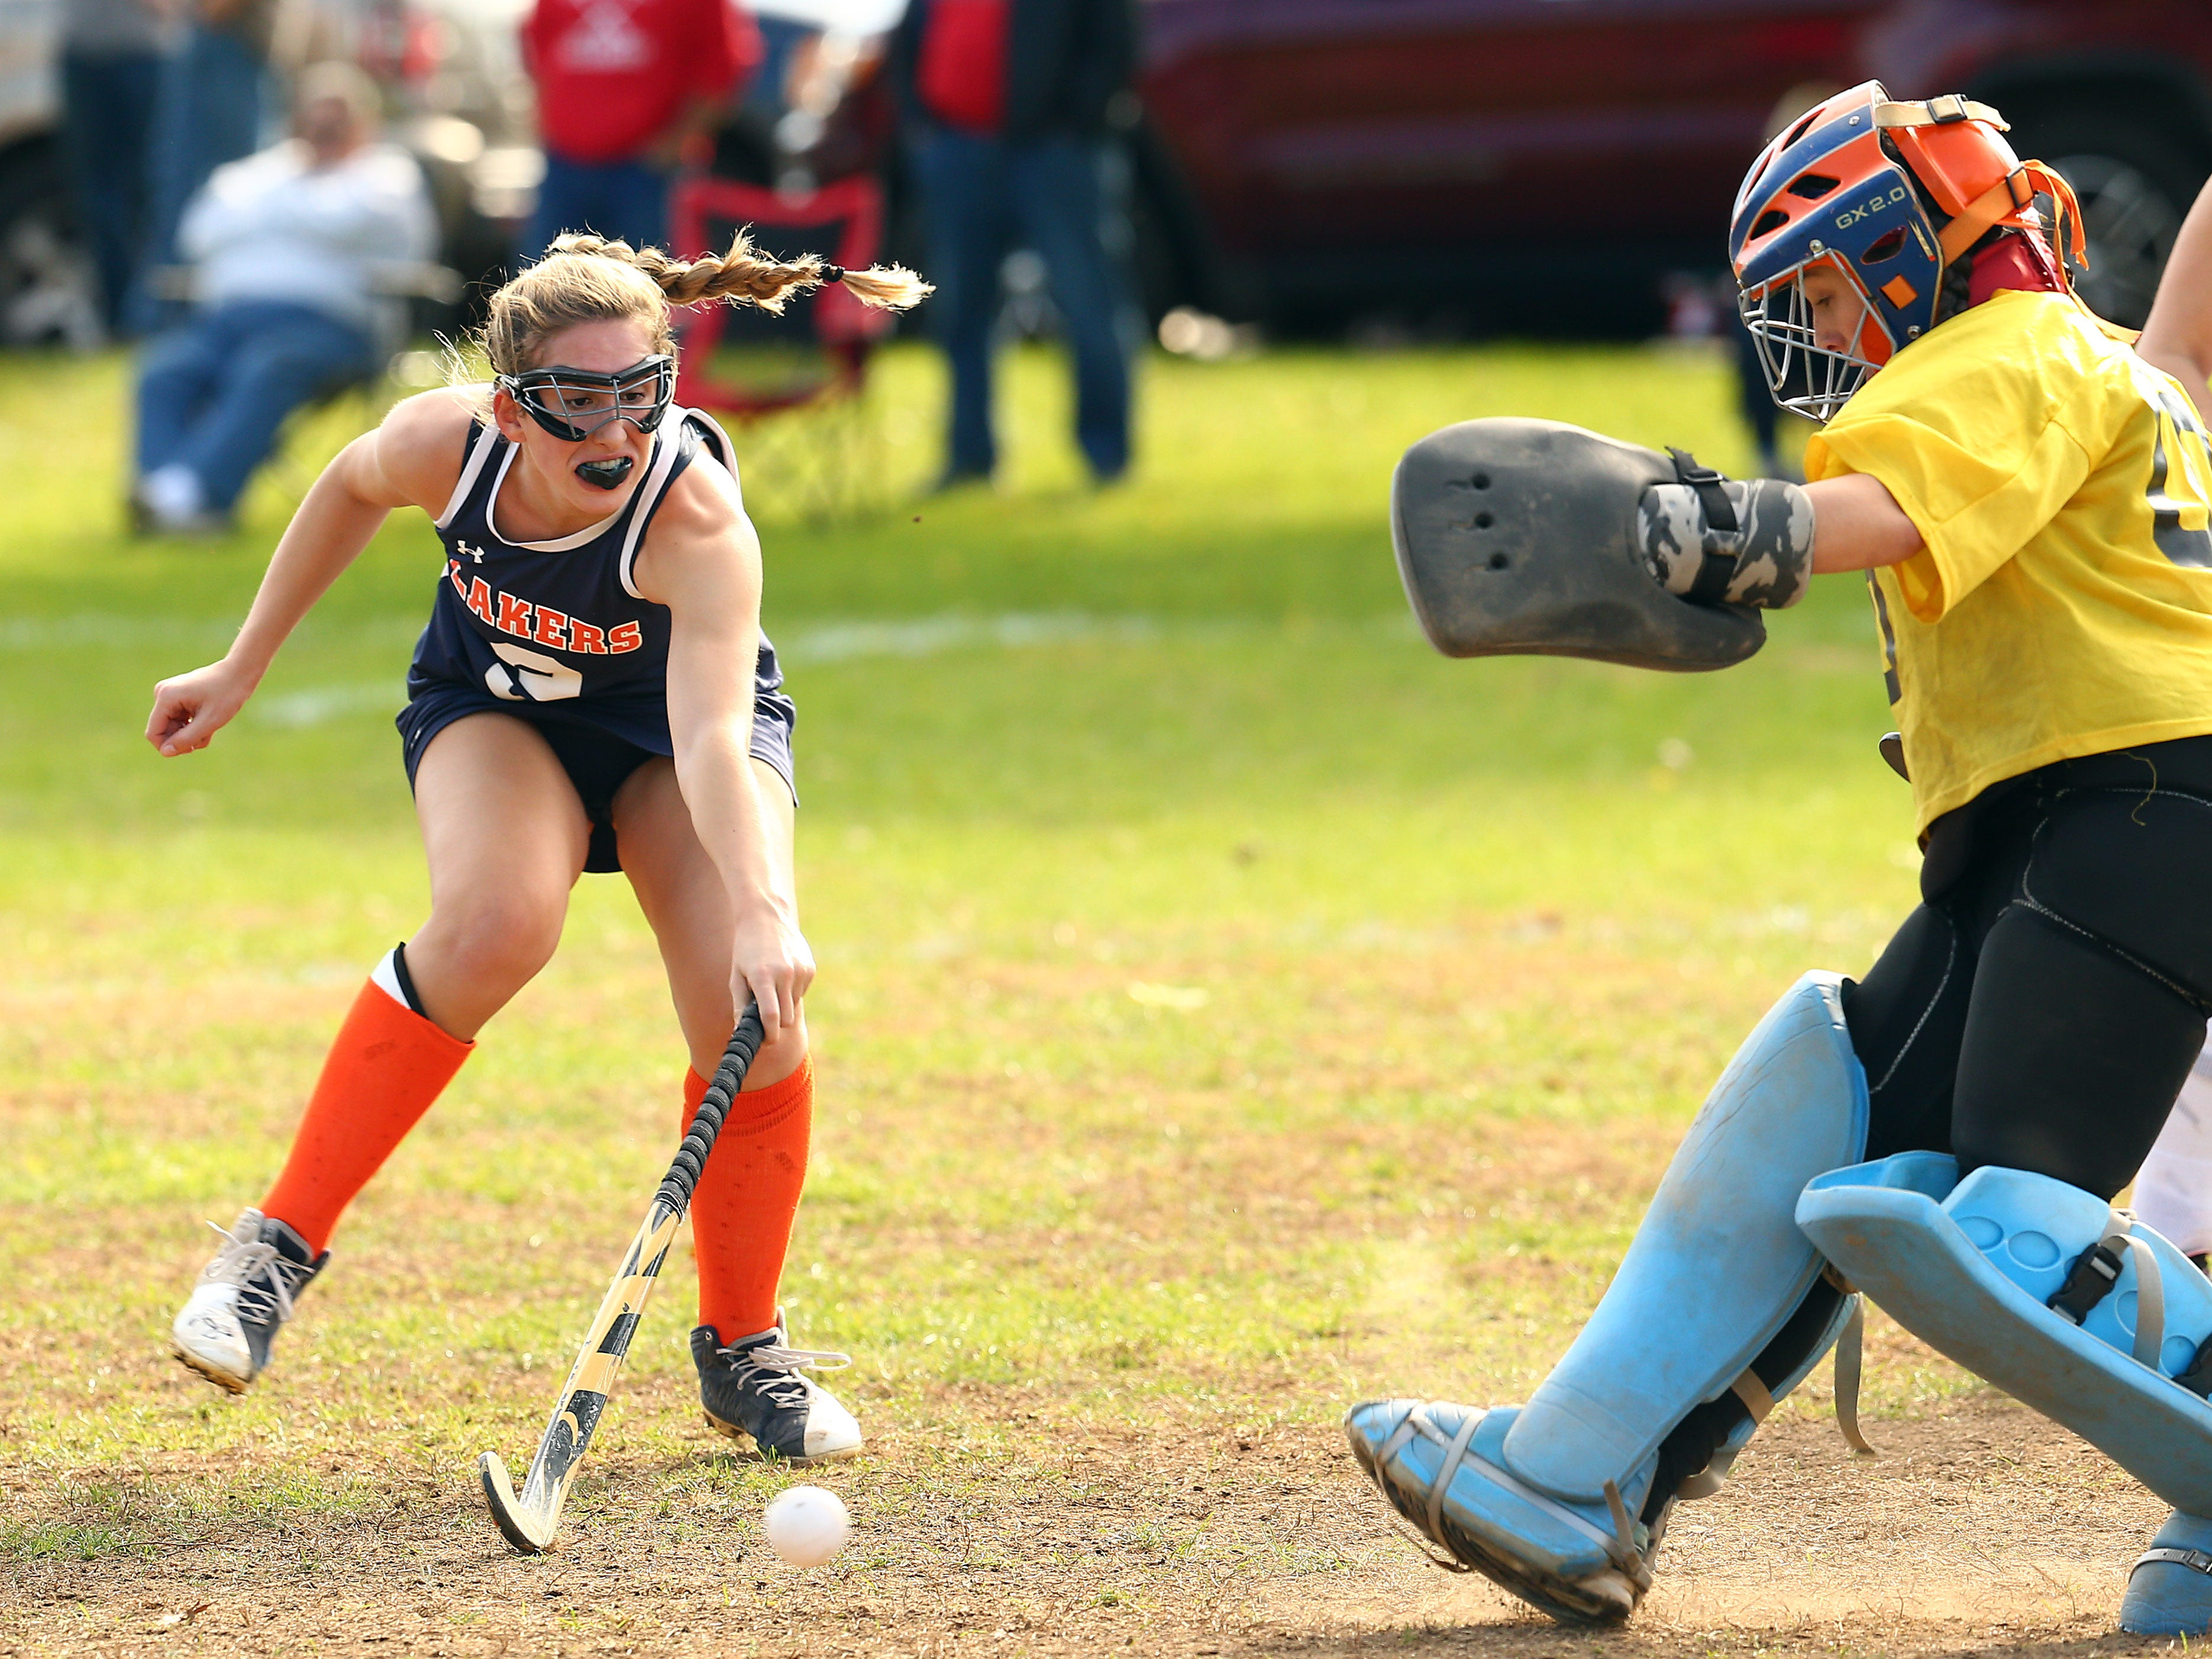 Mountain Lakes Jillian McDonald stretches for the ball vs. Belvidere during their NJSIAA North 1 Group I field hockey semifinal. October 31, 2018, Belvidere, NJ